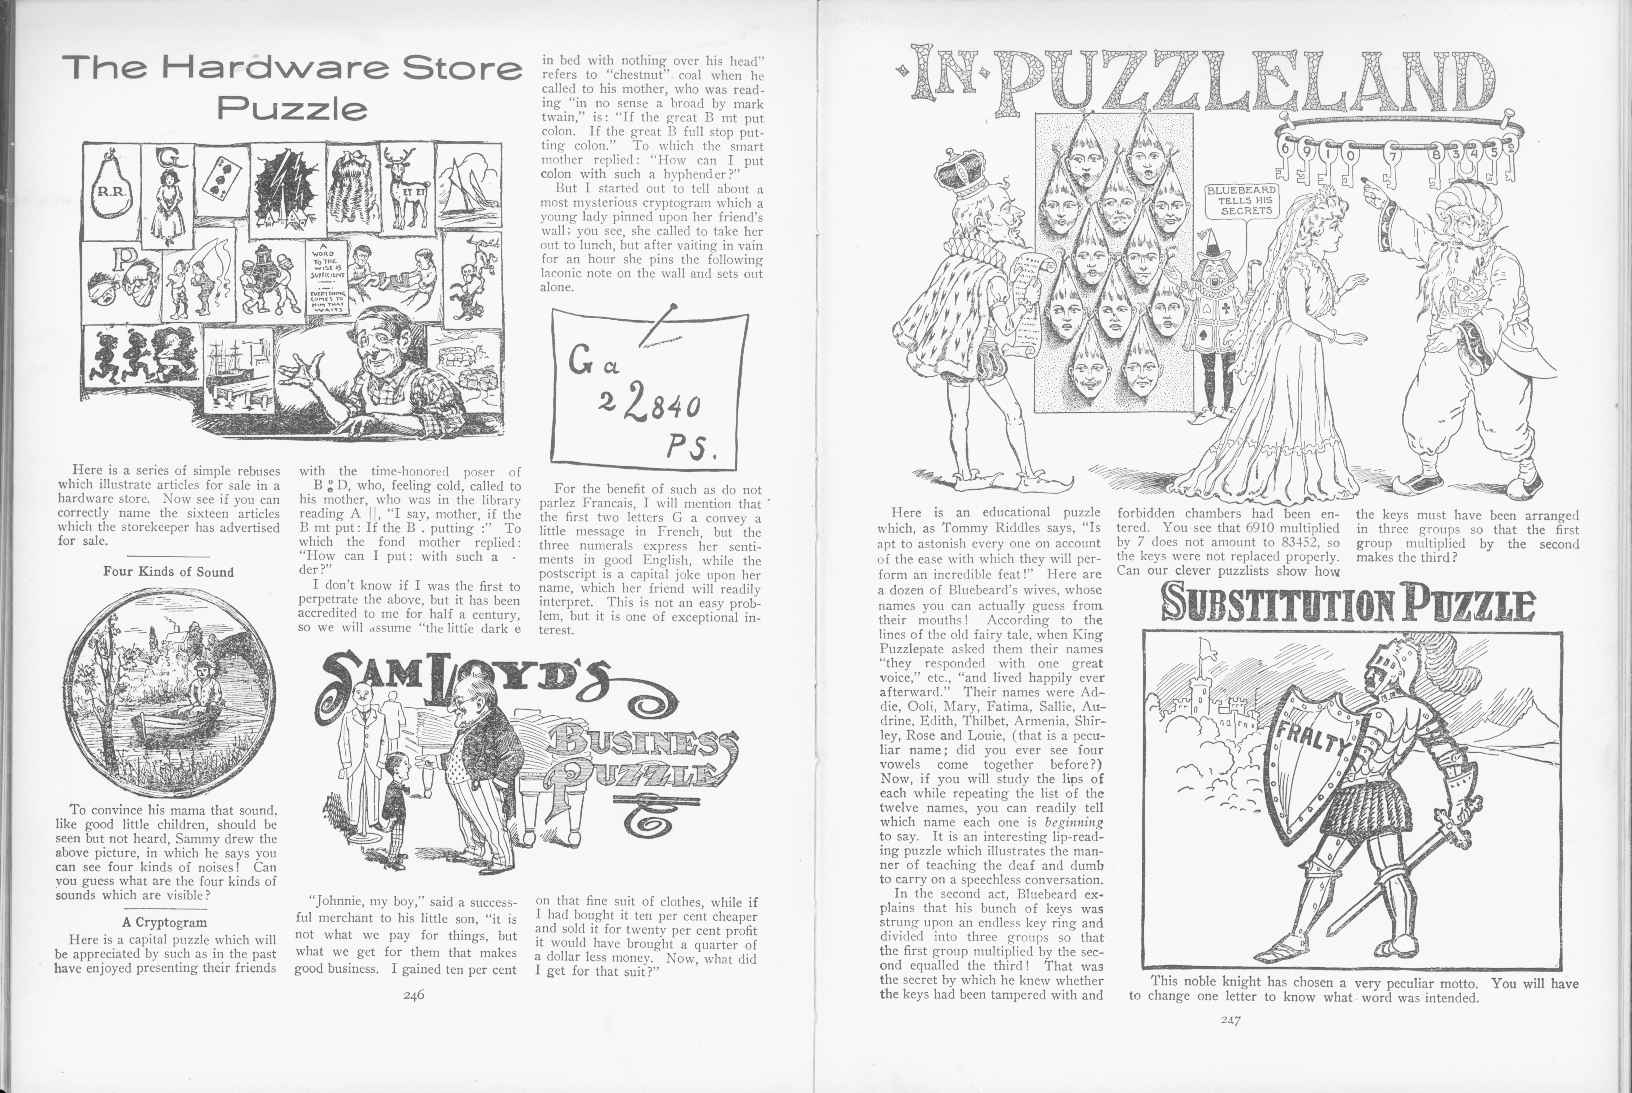 Sam Loyd - Cyclopedia of Puzzles - page 246-247